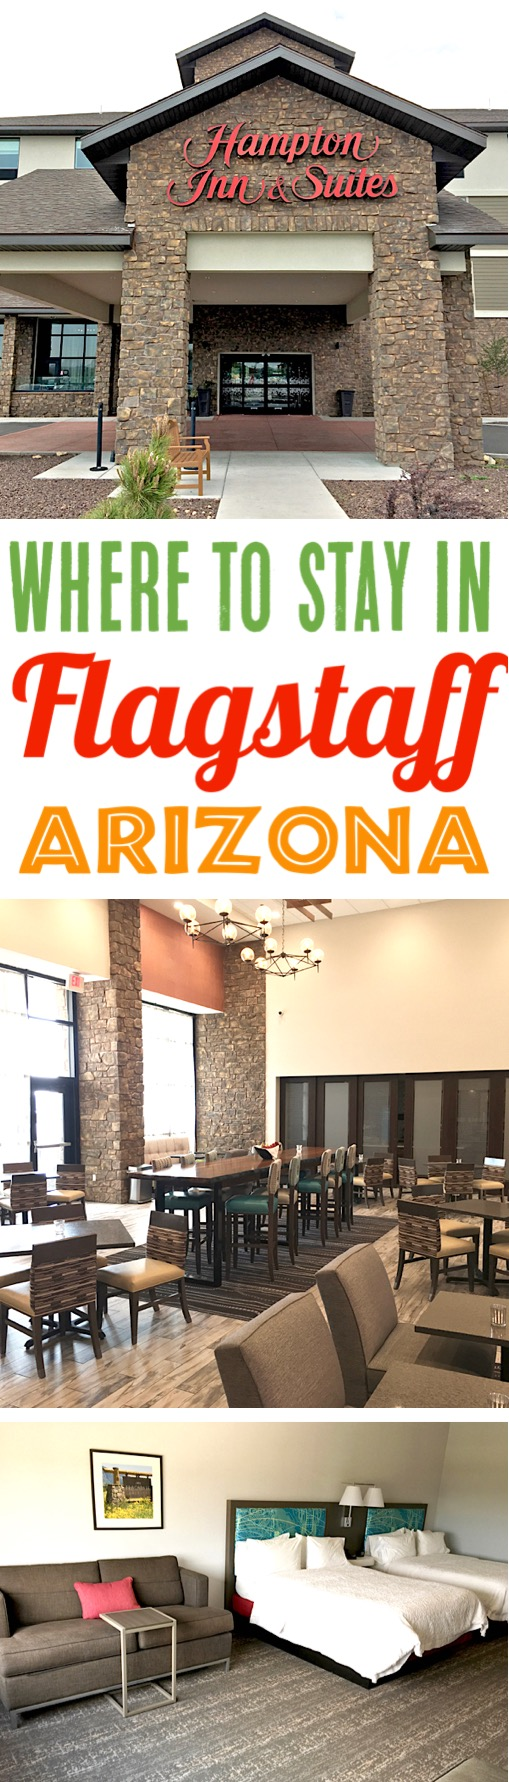 Flagstaff Arizona Things to Do in Summer and Winter + Where to Stay in Flagstaff AZ